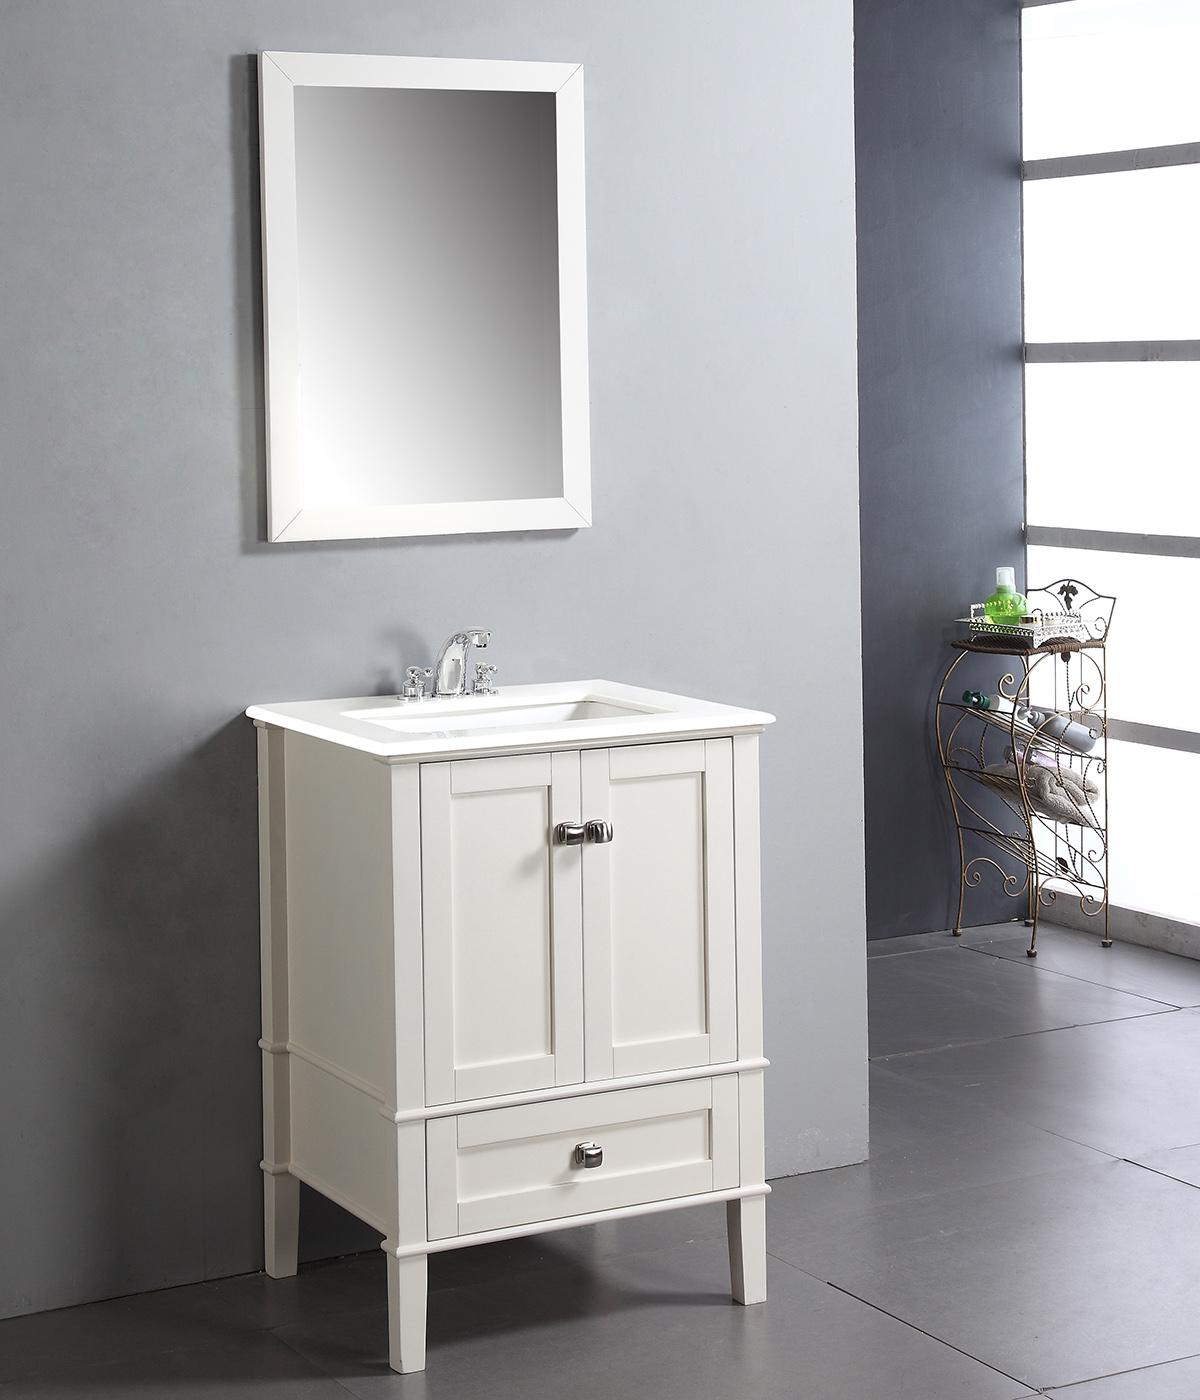 Quartz vanity tops on shoppinder for Bathroom quartz vanity tops